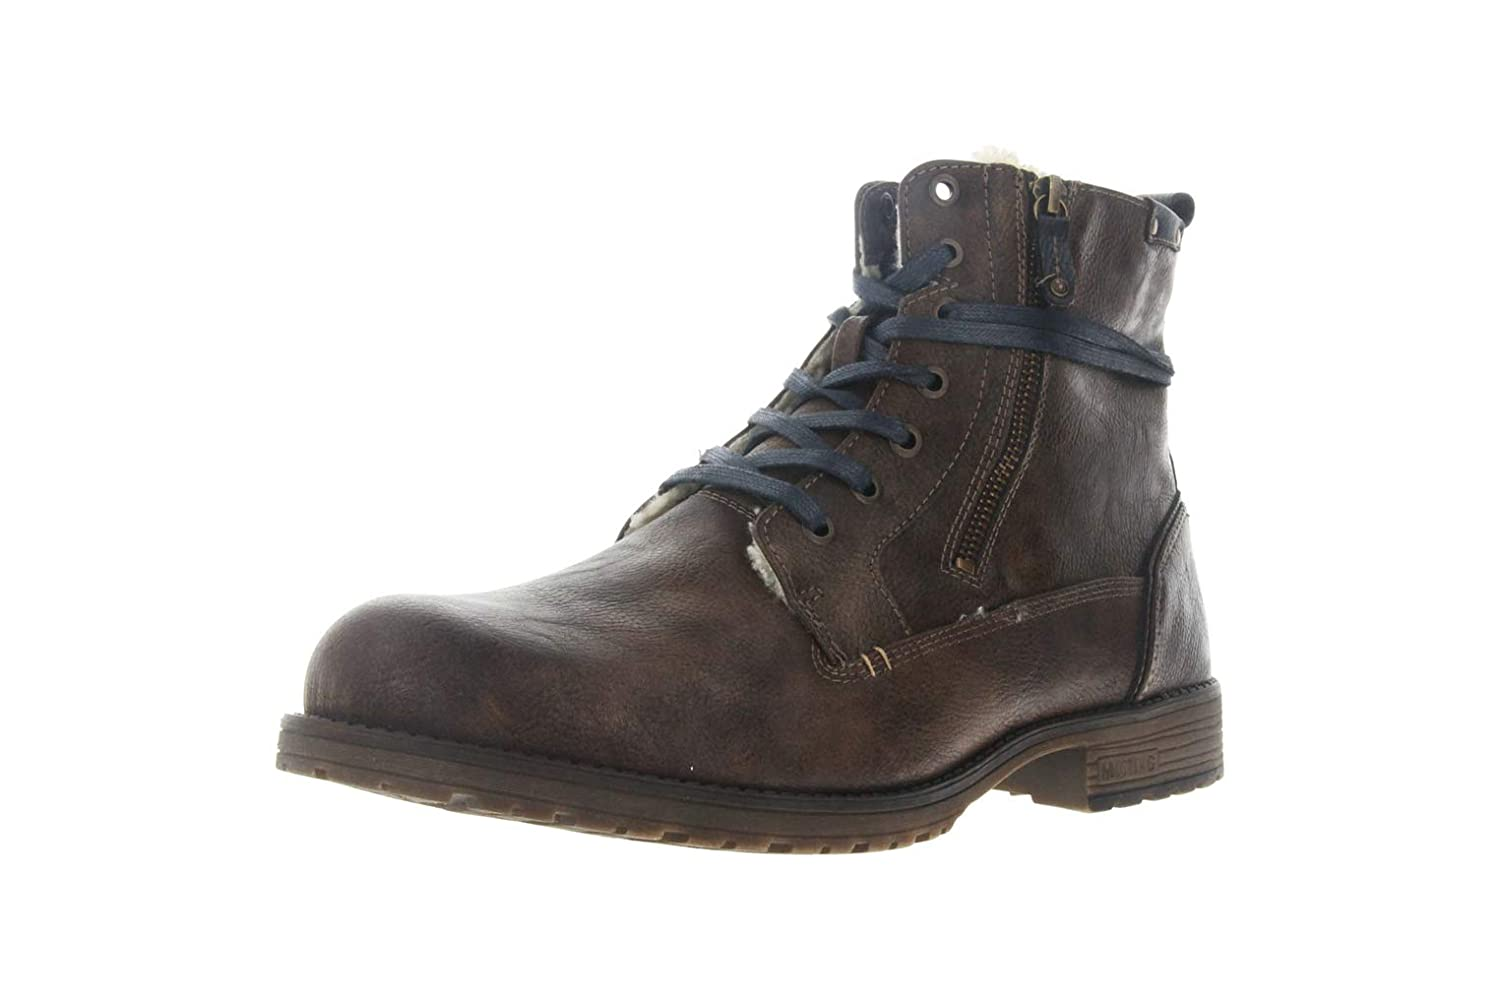 Bottes /& Bottines Classiques Homme Mustang Booty